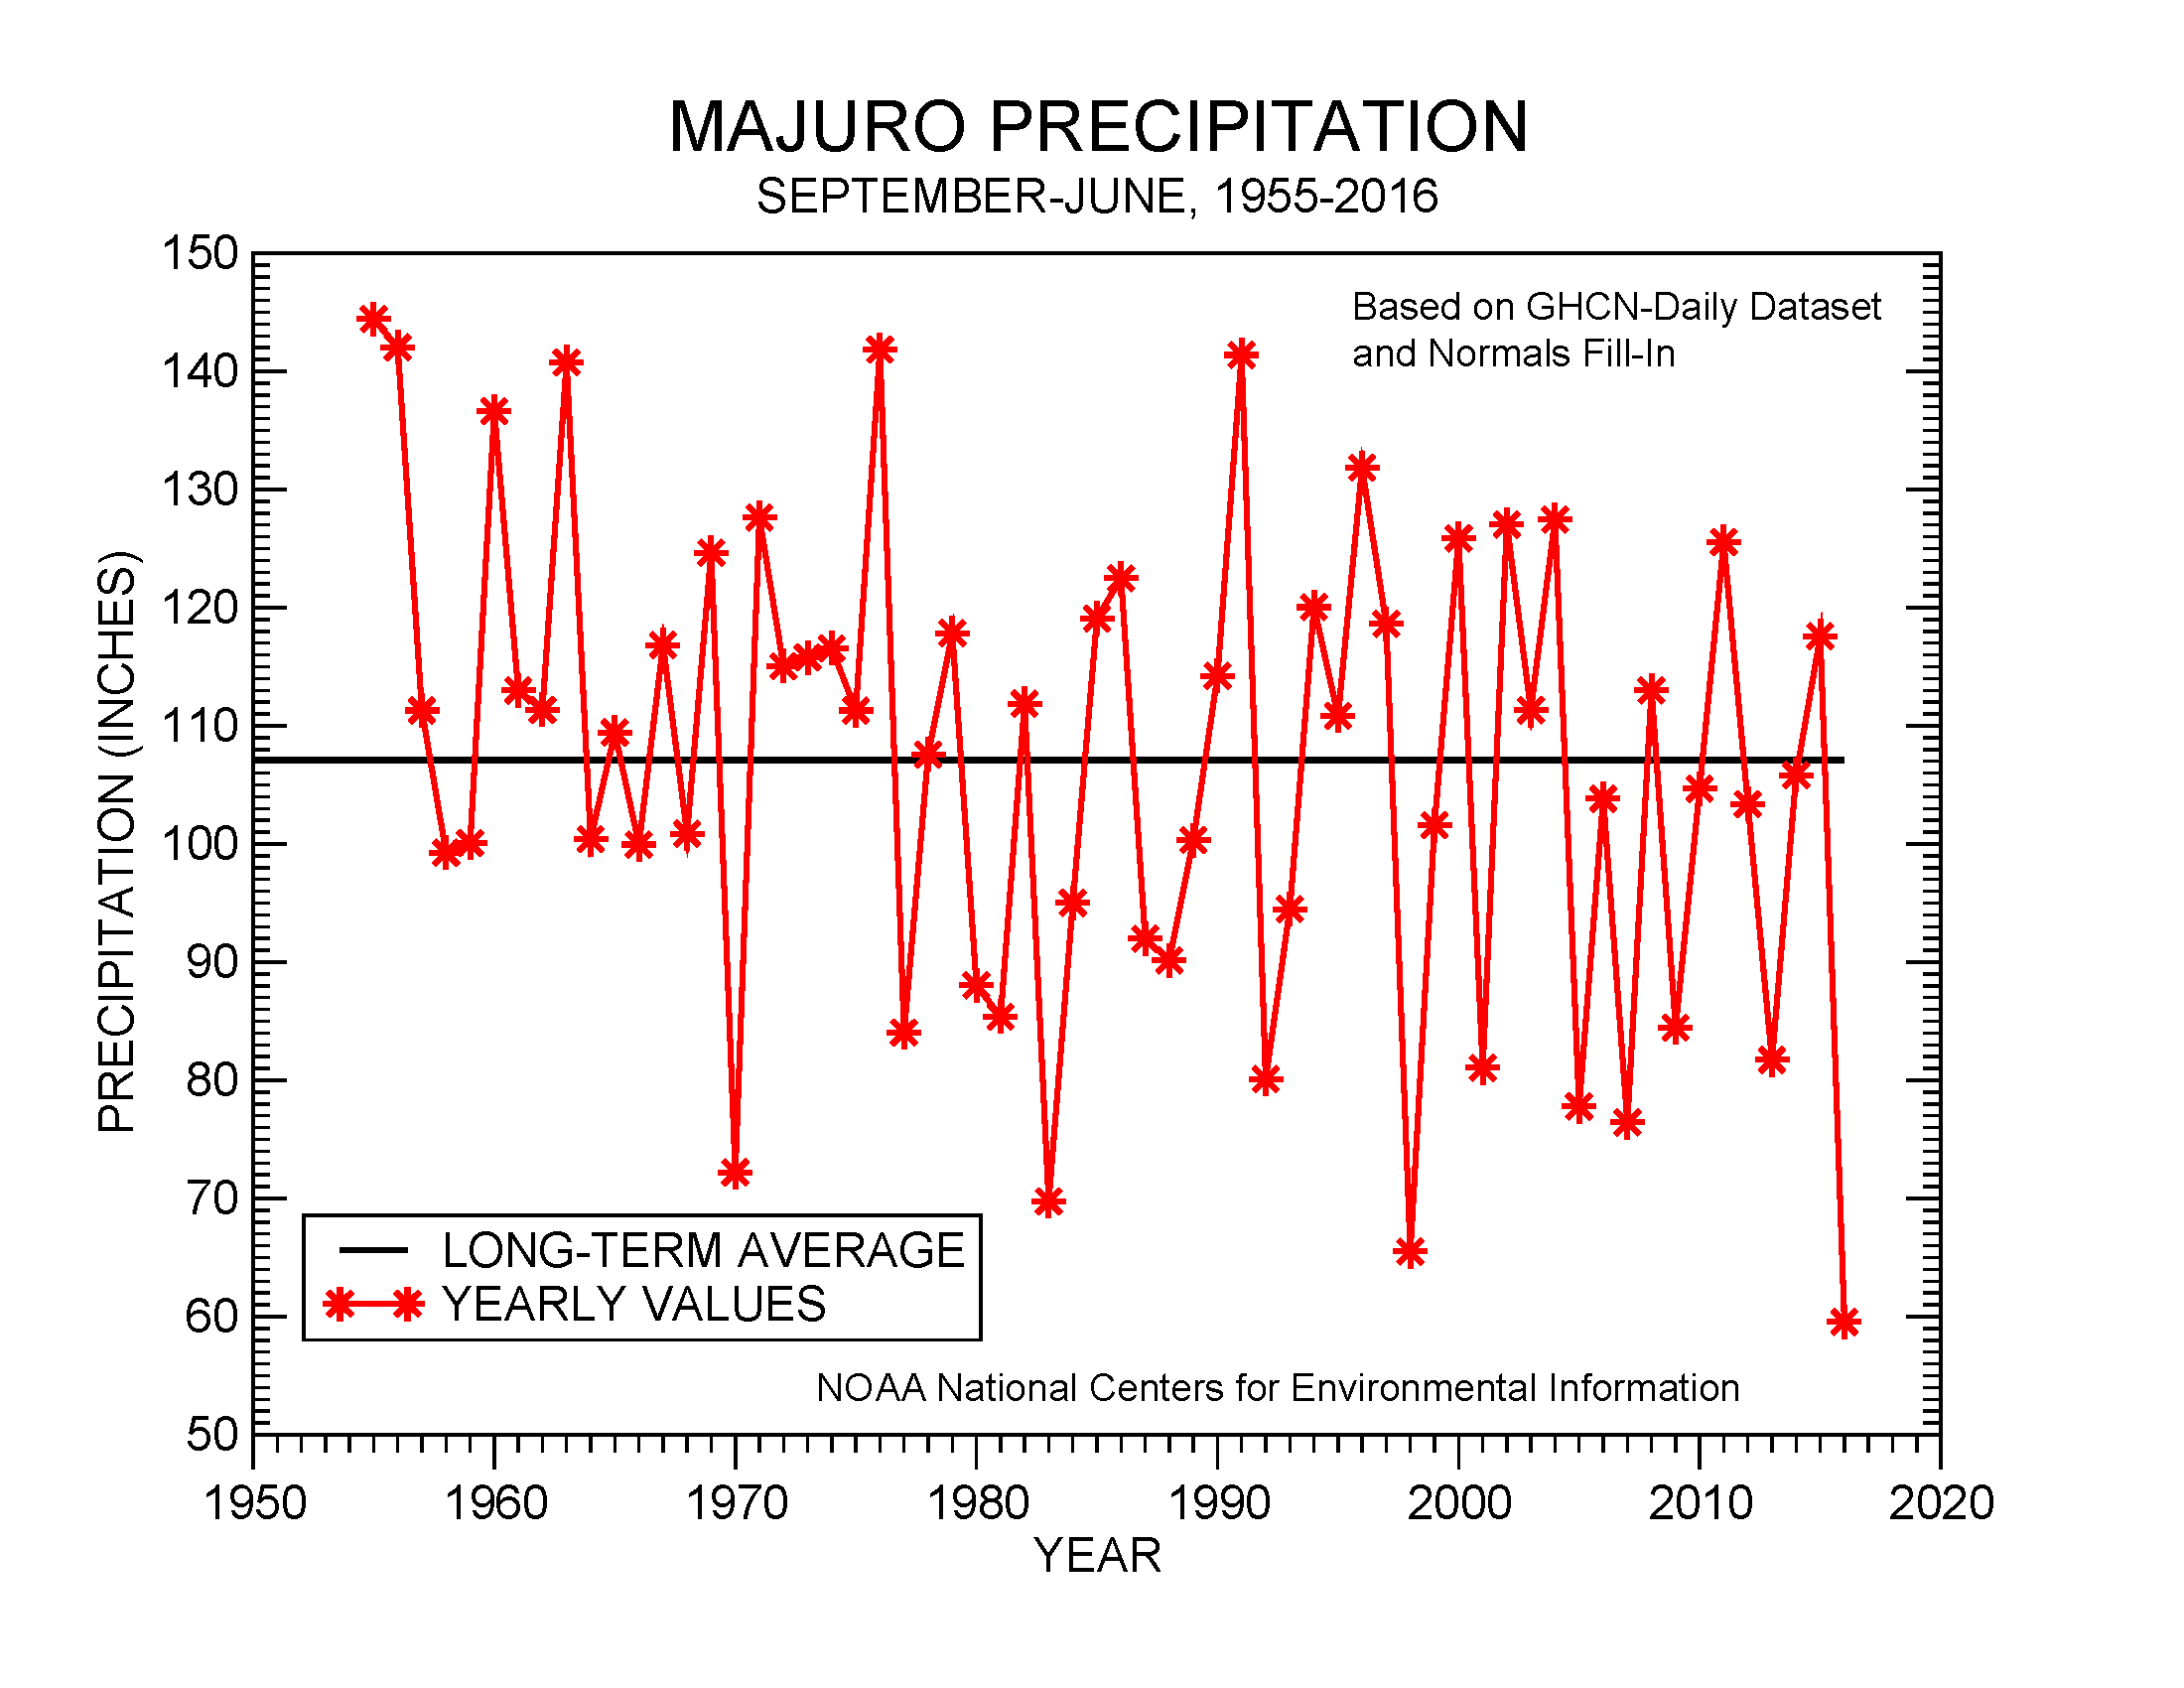 September-June precipitation for Majuro, 1955-2016